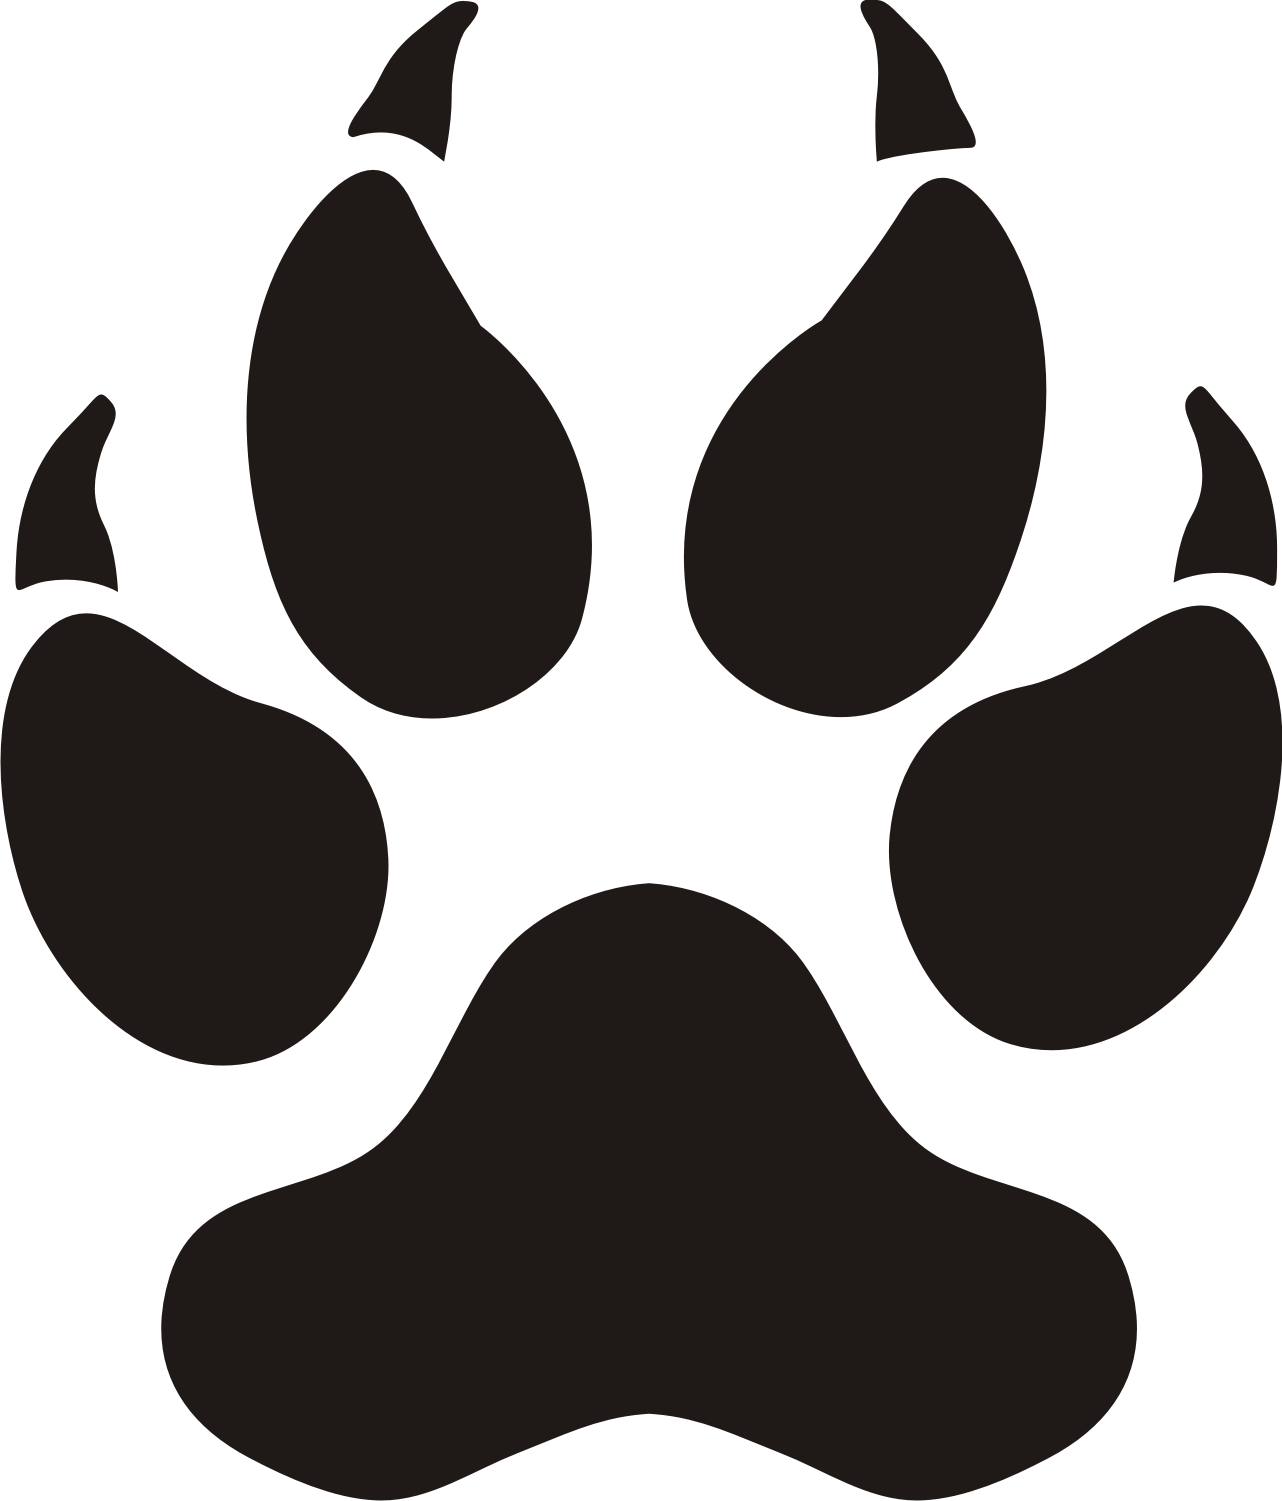 paw silhouette at getdrawings com free for personal use paw rh getdrawings com  red panther paw print clip art